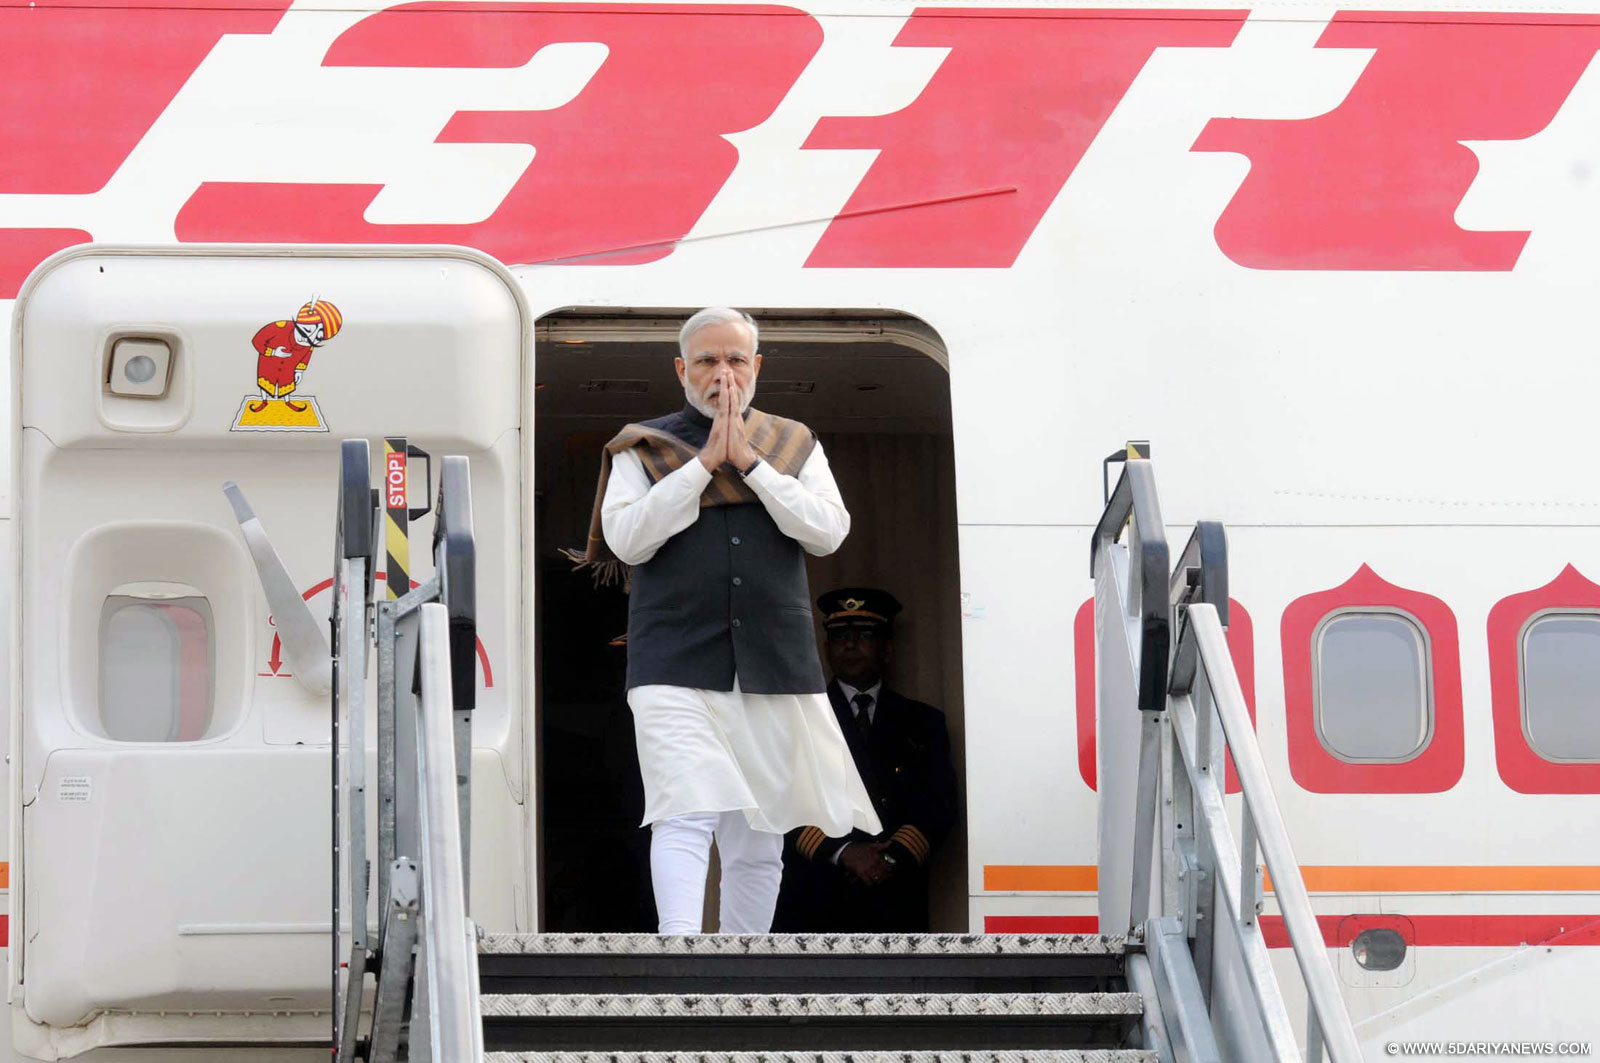 The Prime Minister, Shri Narendra Modi arrives at the Dublin airport, Ireland on September 23, 2015.